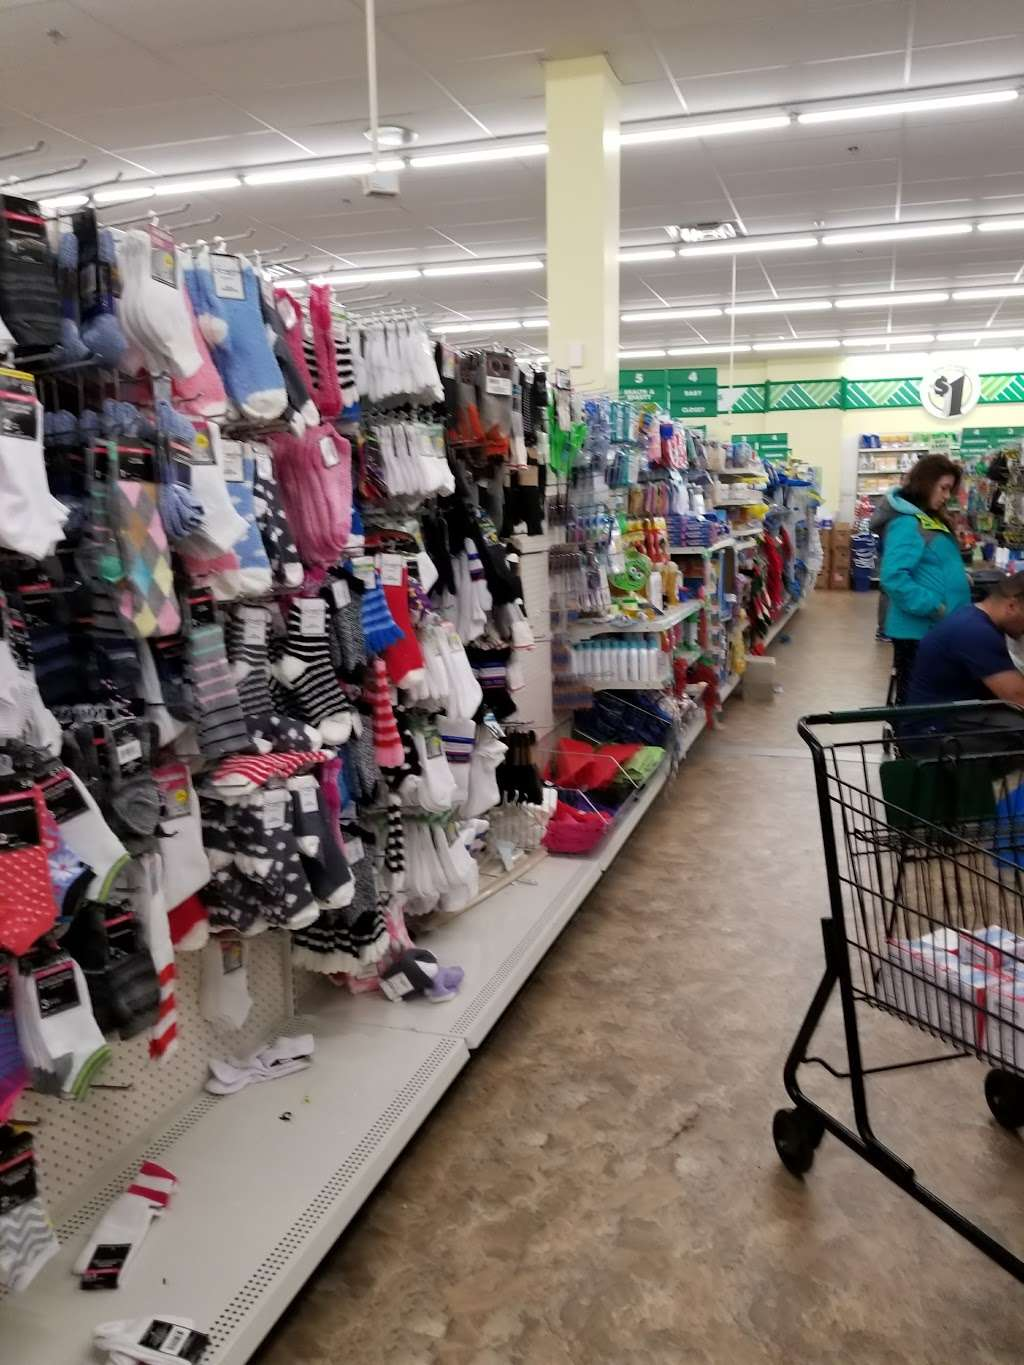 Dollar Tree - furniture store  | Photo 6 of 10 | Address: 8101 Tonnelle Ave #3, North Bergen, NJ 07047, USA | Phone: (201) 854-6080